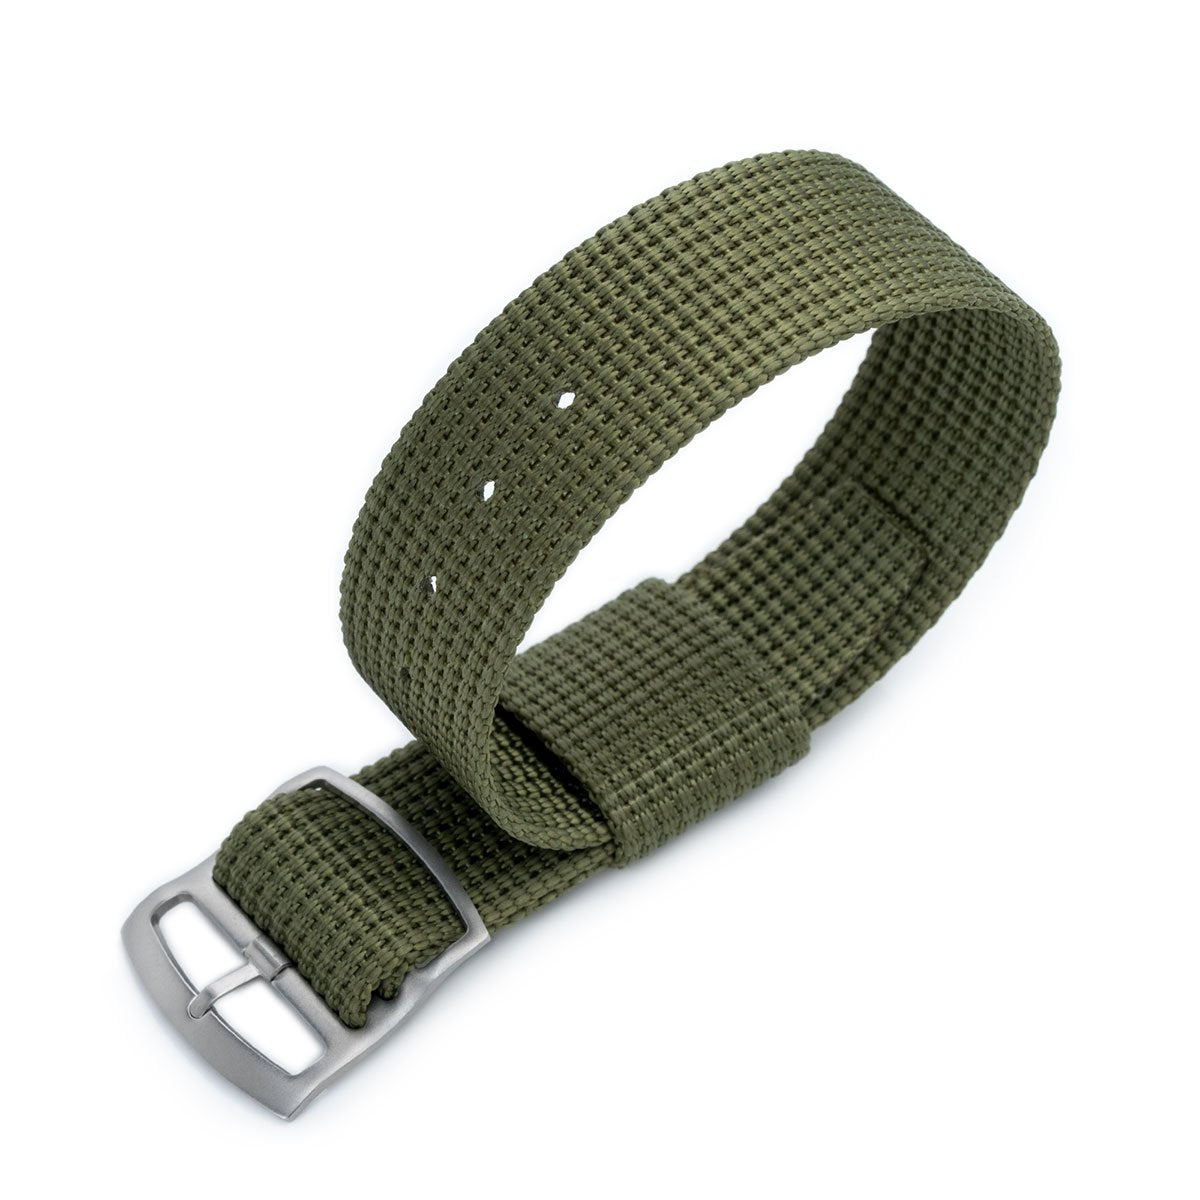 20mm or 22mm MiLTAT RAF N7 3-D Woven Nylon Nato Watch Strap Military Green Sandblasted Ladder Lock Slider Buckle Strapcode Watch Bands